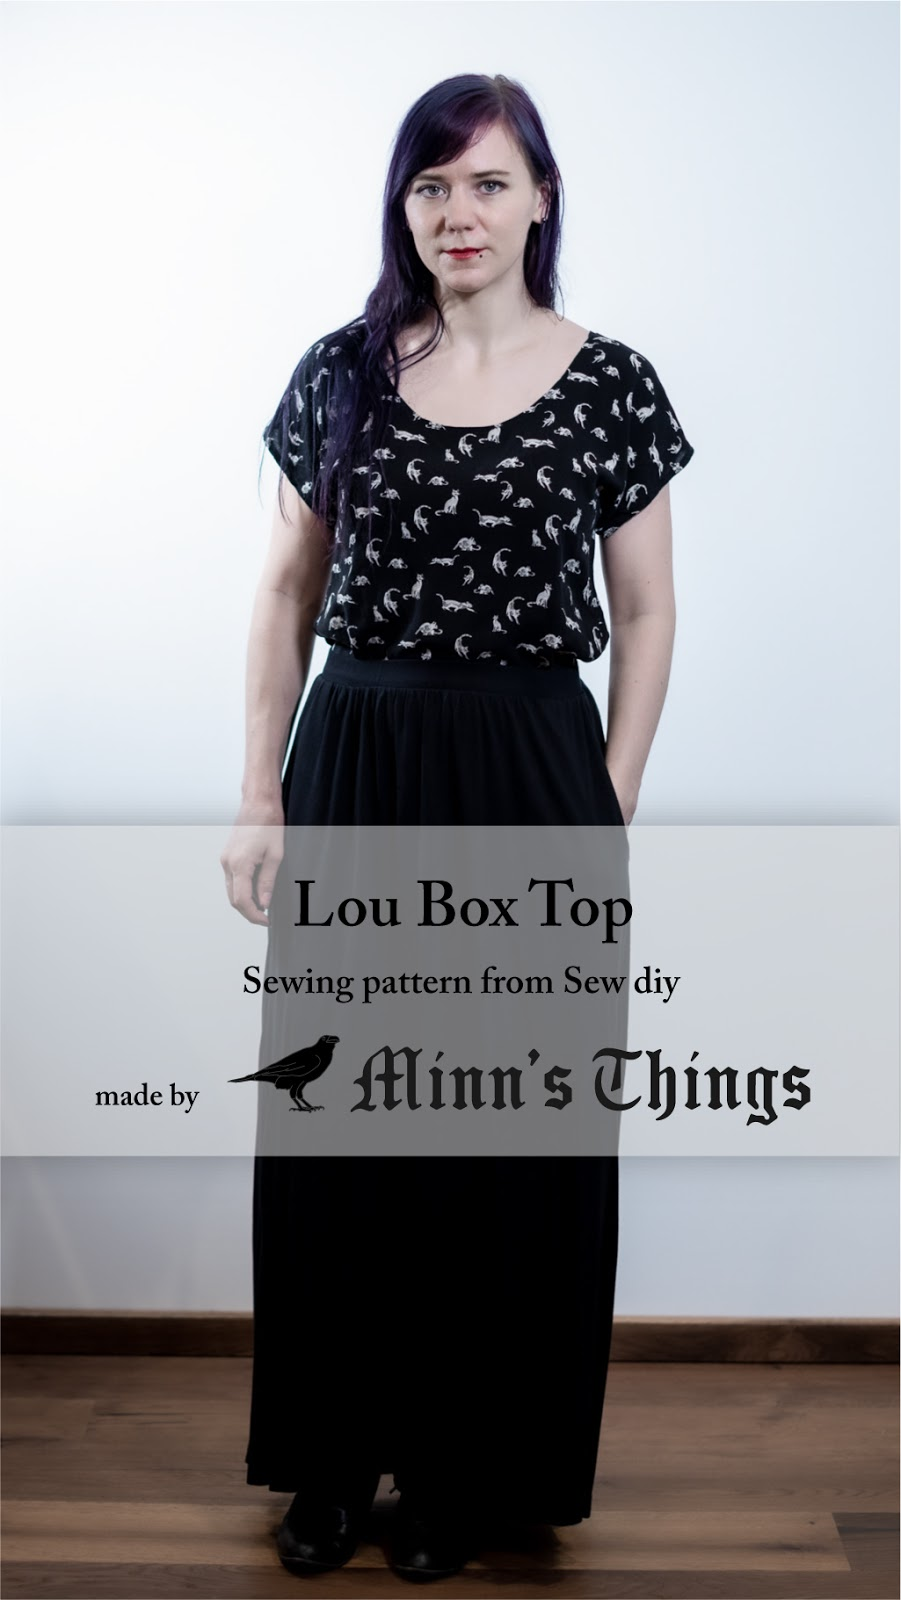 modified sew diy lou box top sewing pattern cats woven blouse fabric minn's things pinterest